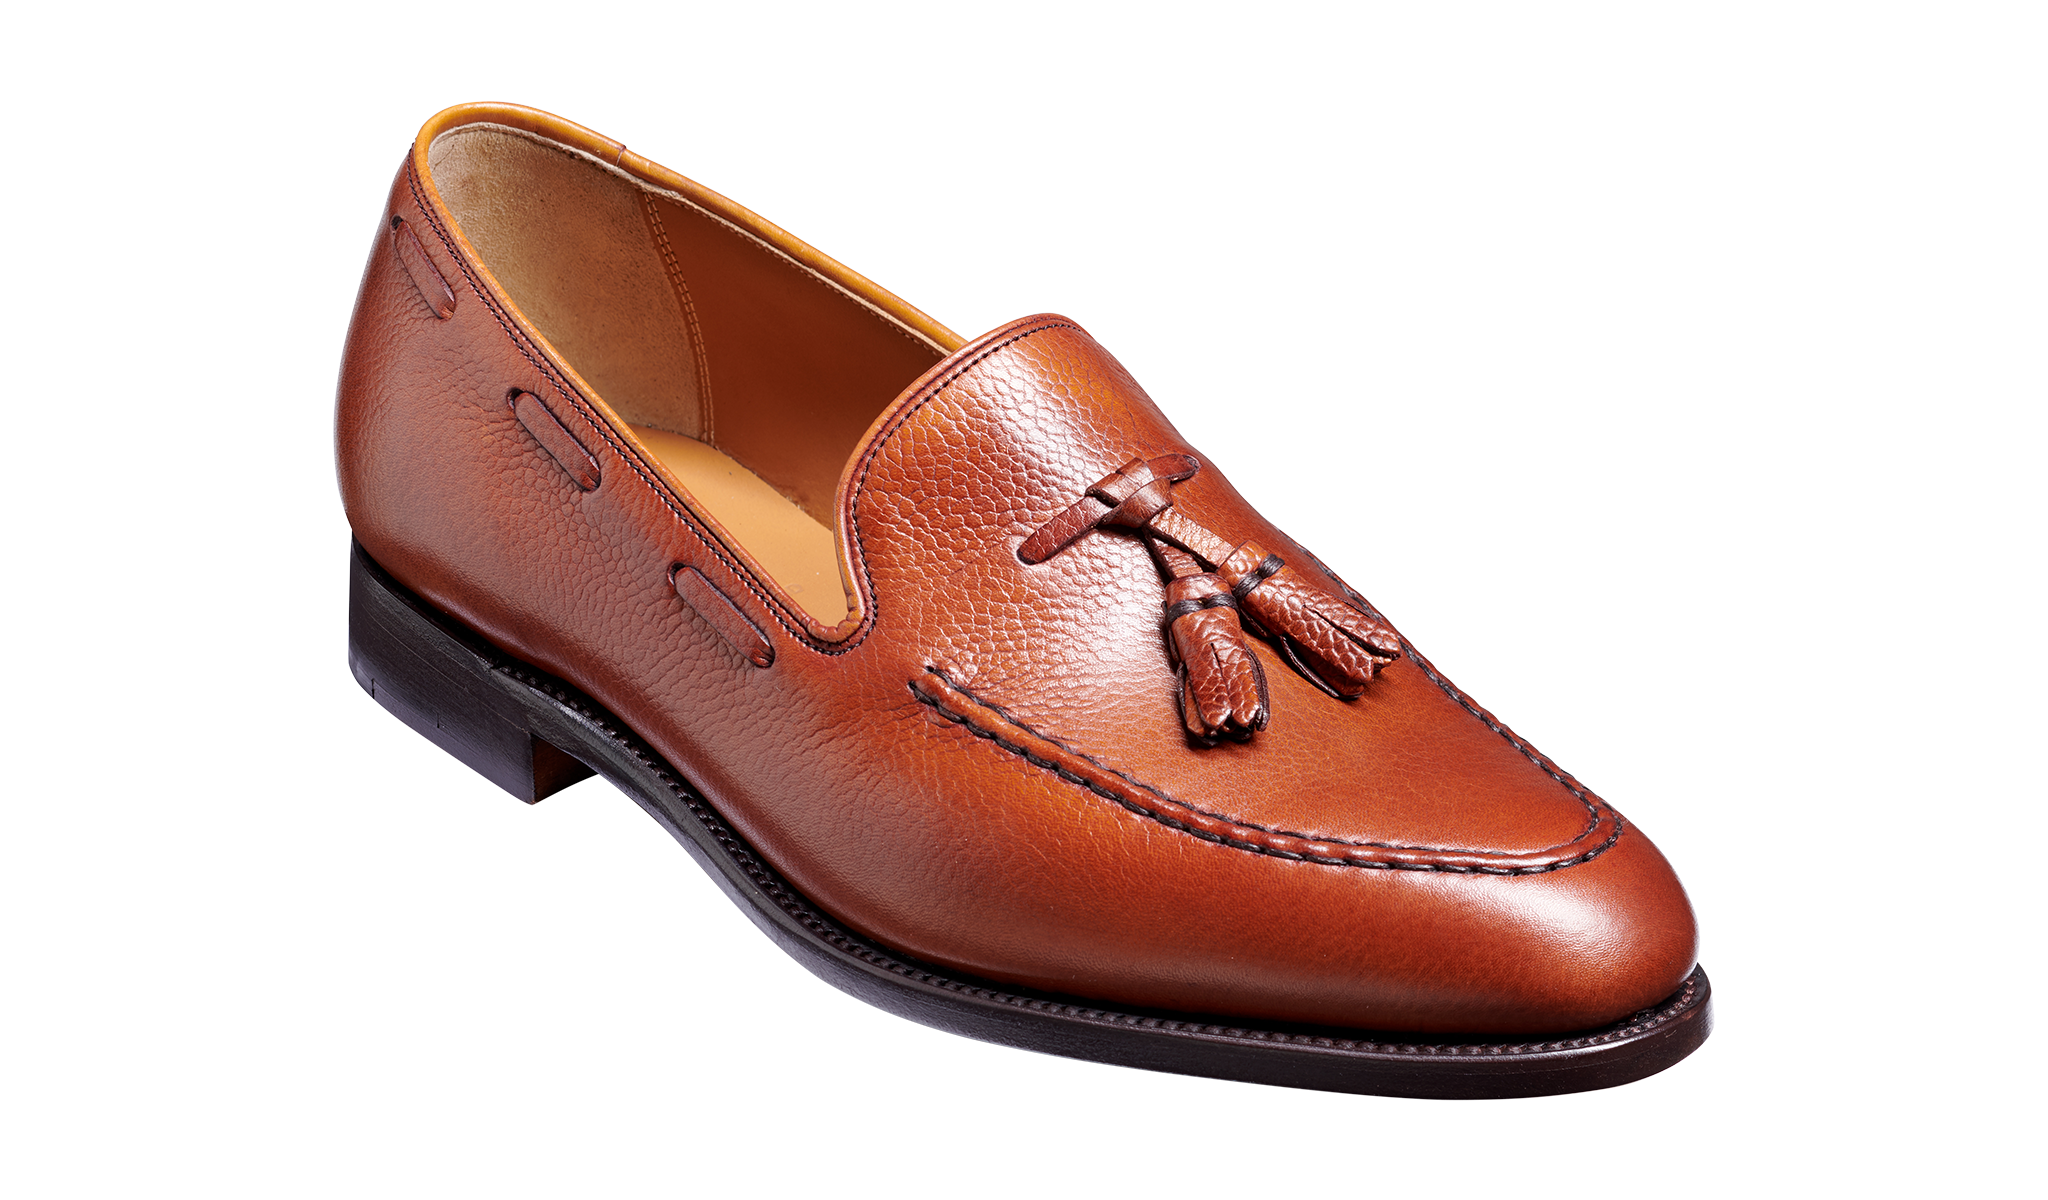 Newborough - A brown handmade leather loafers for men by Barker Shoes.